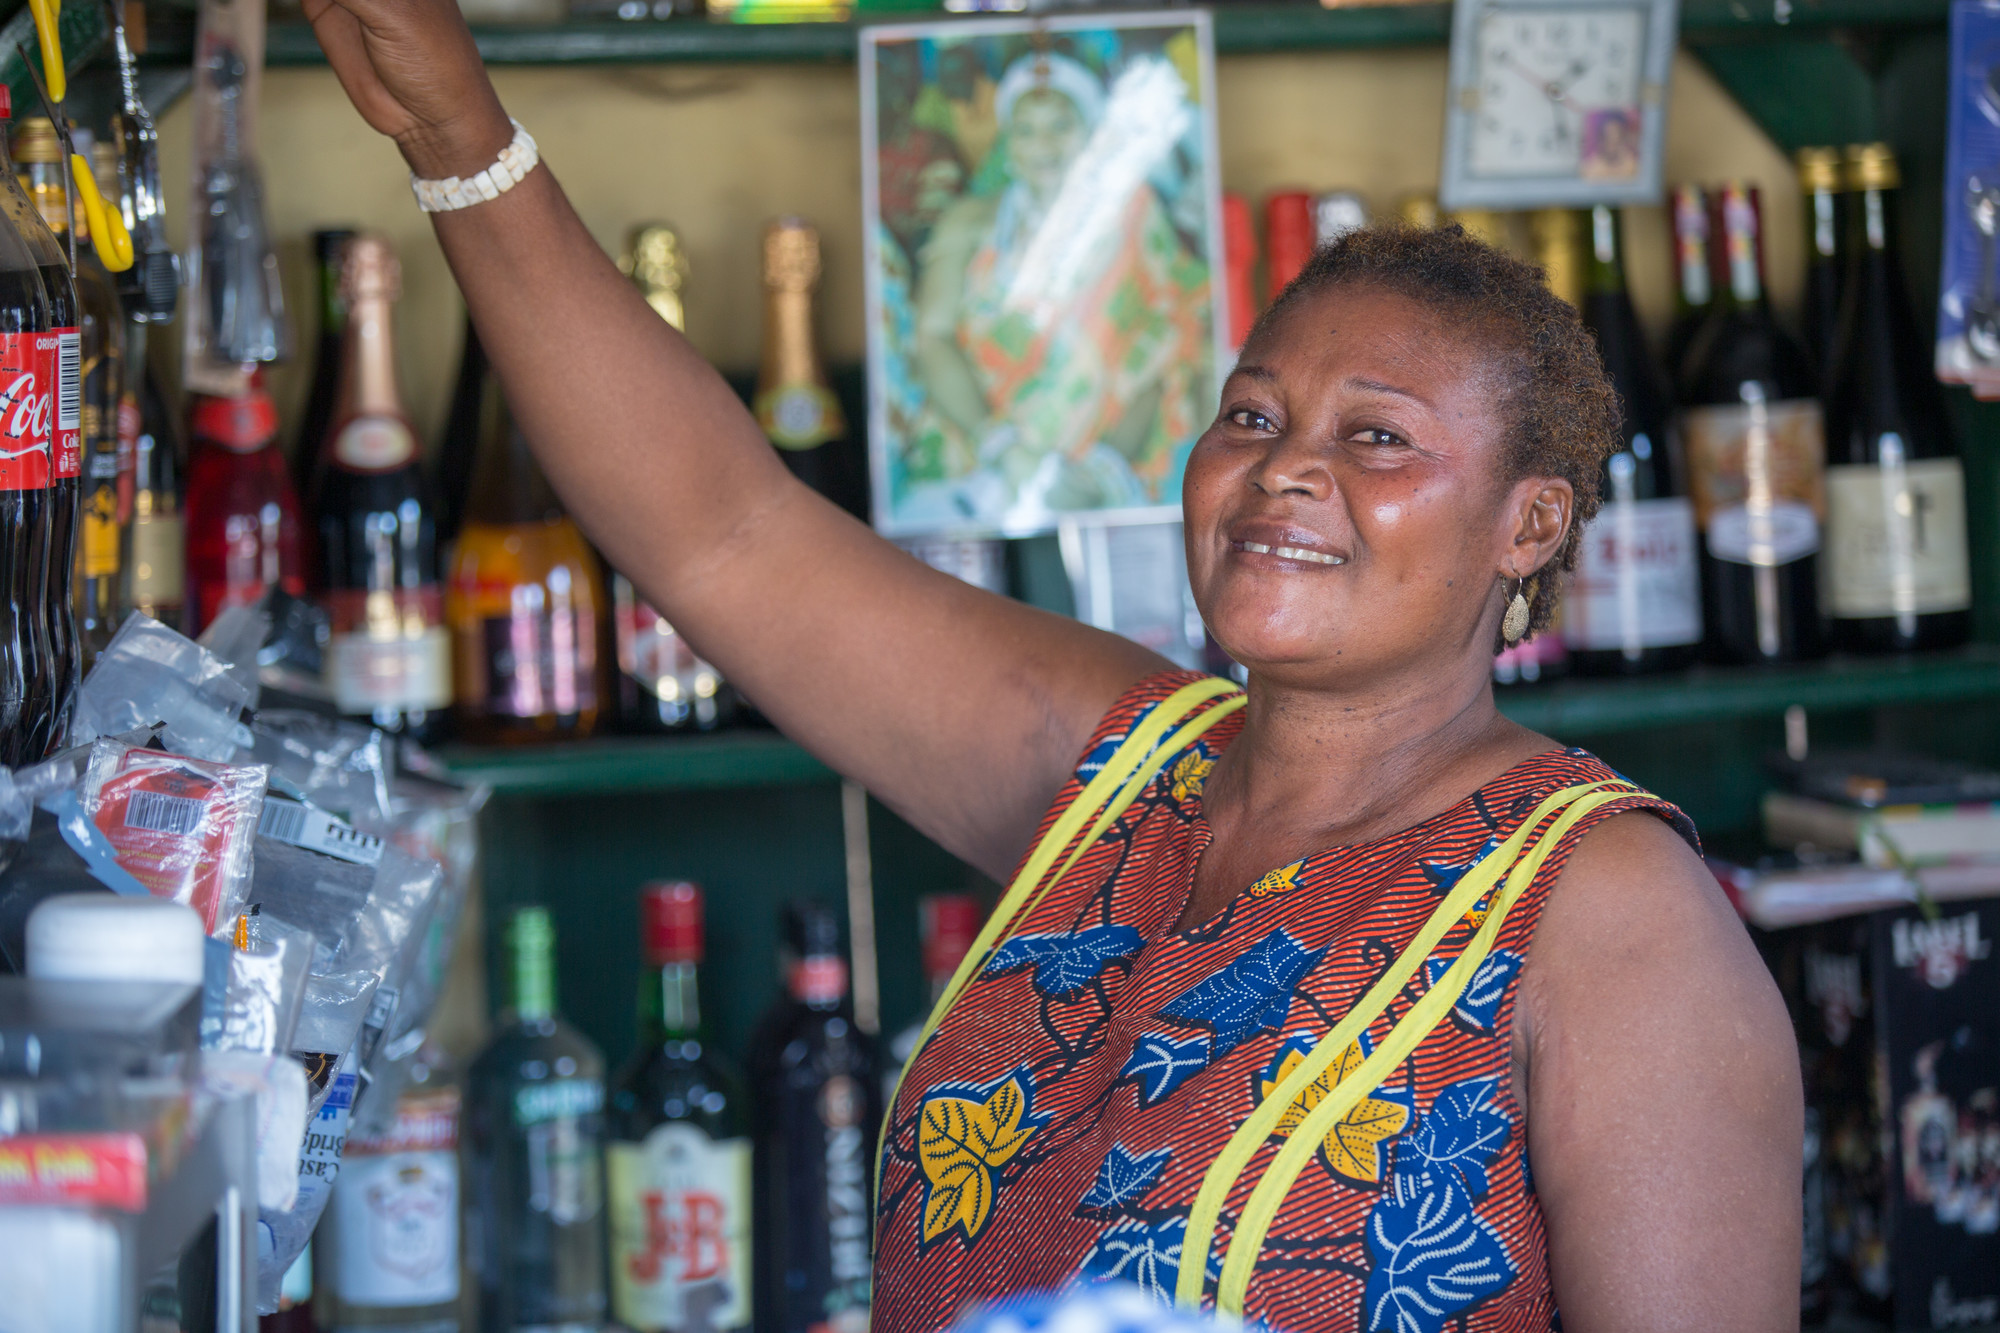 A woman smiles while reaching up to a shelf in a bar.